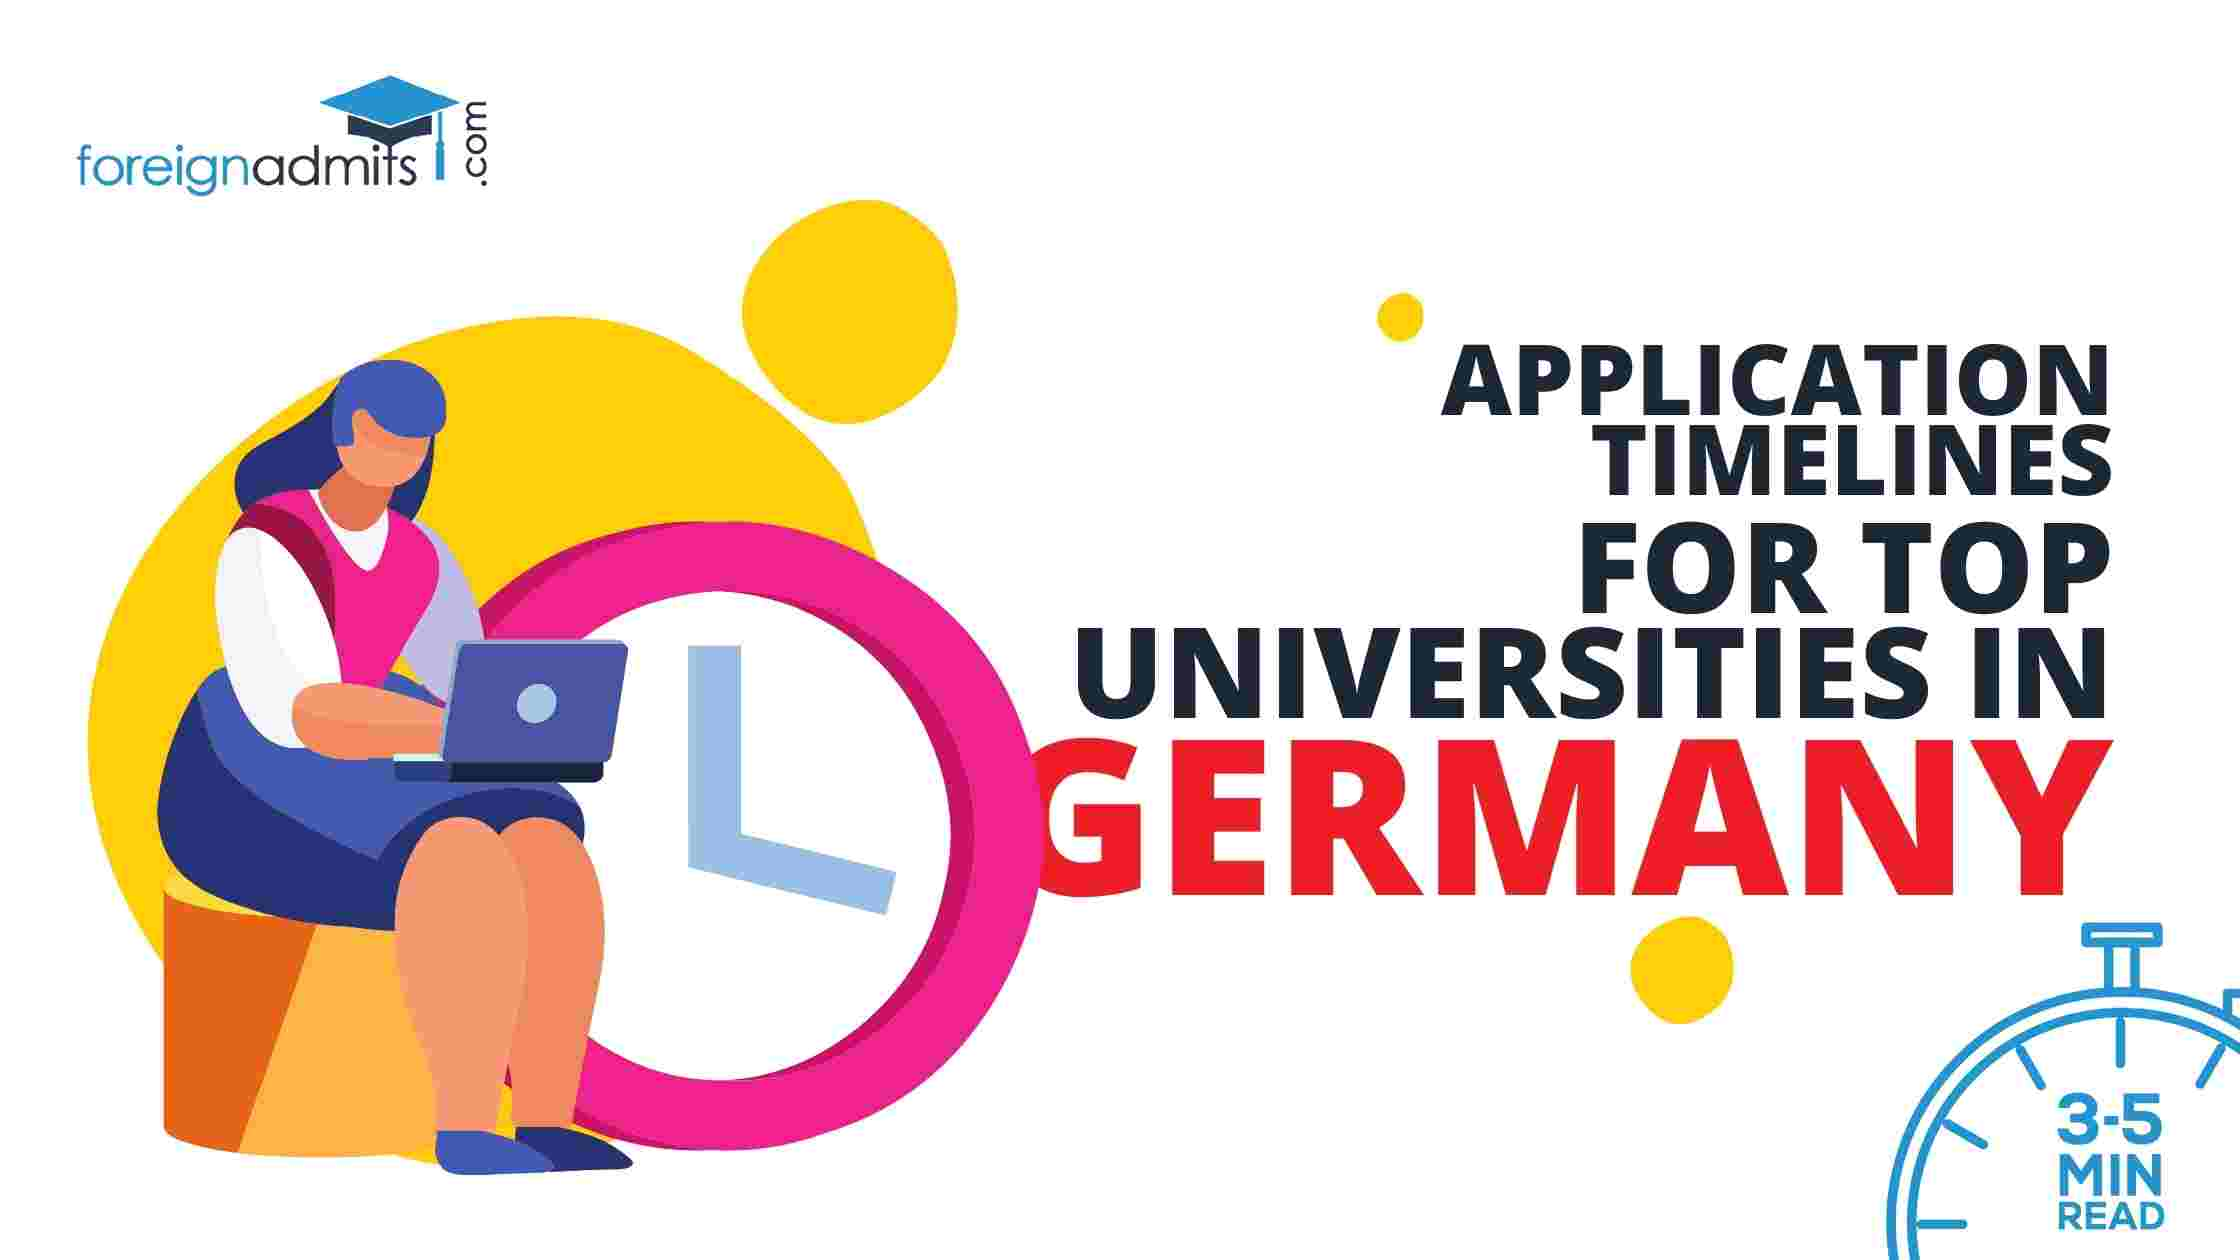 Application Timelines for Top Universities in Germany